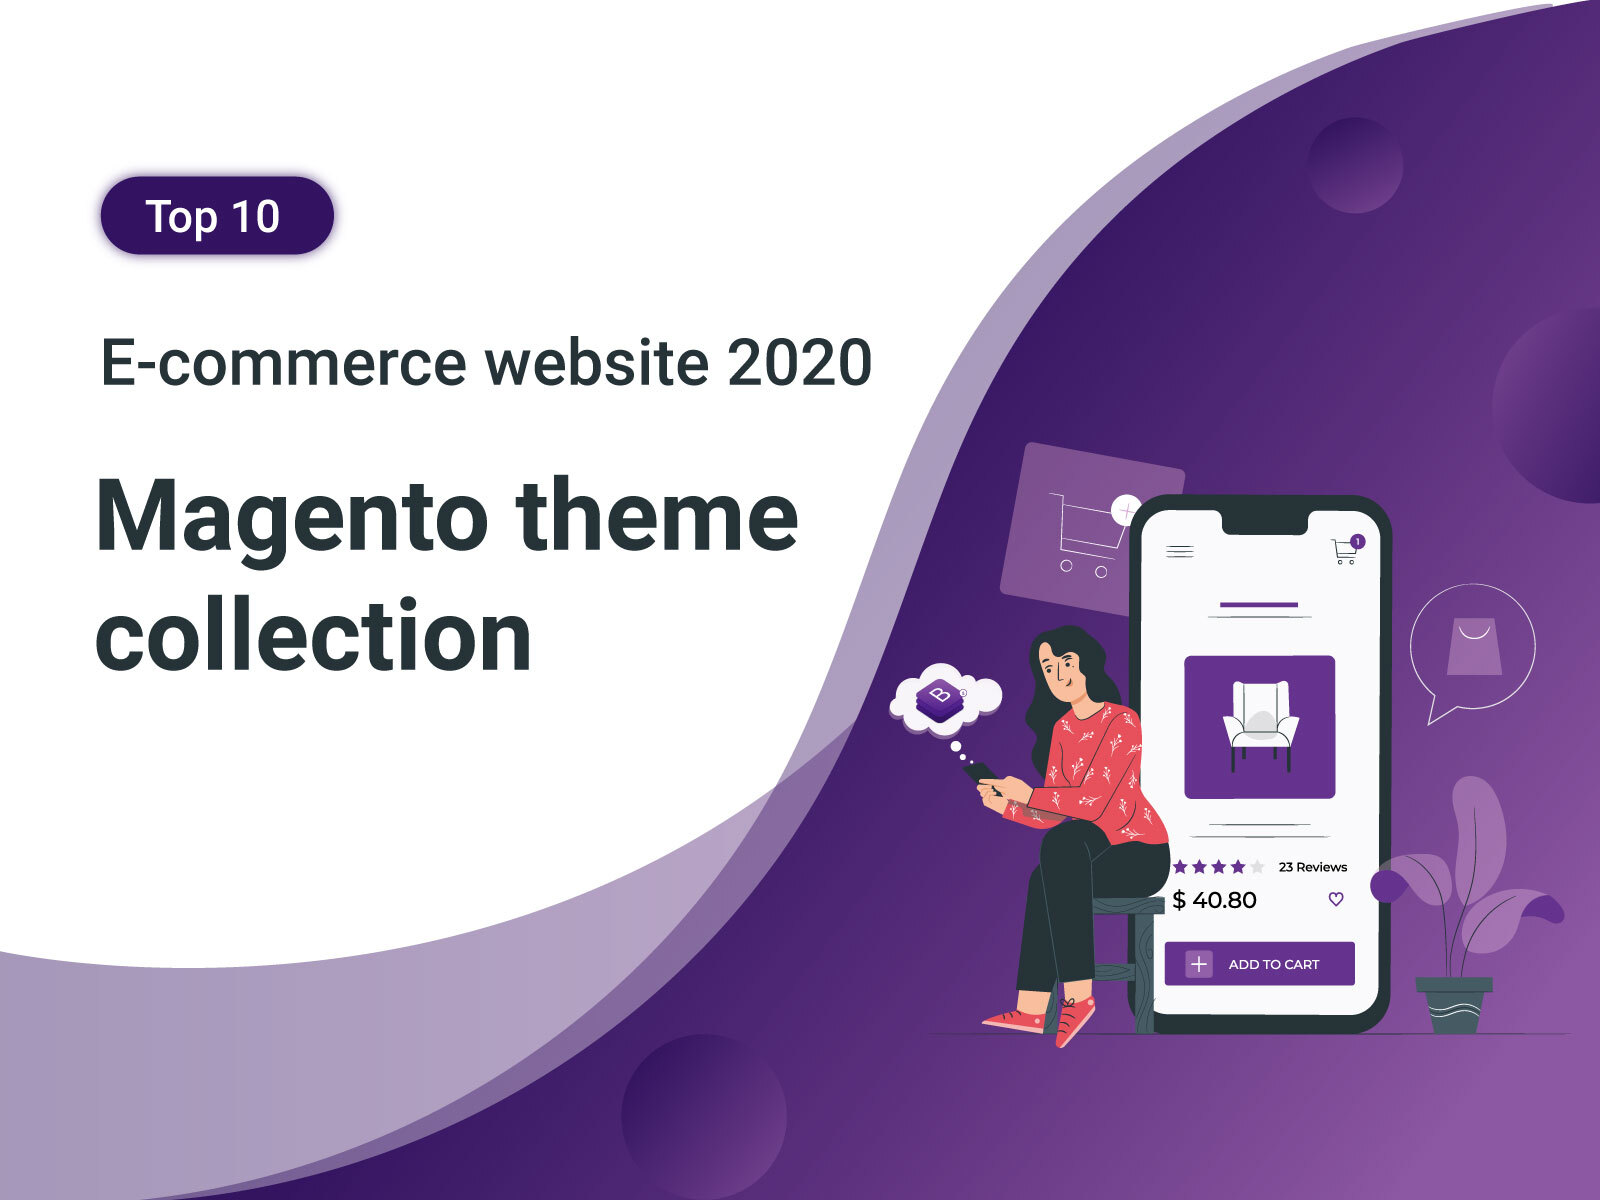 Magento theme collection for E-commerce